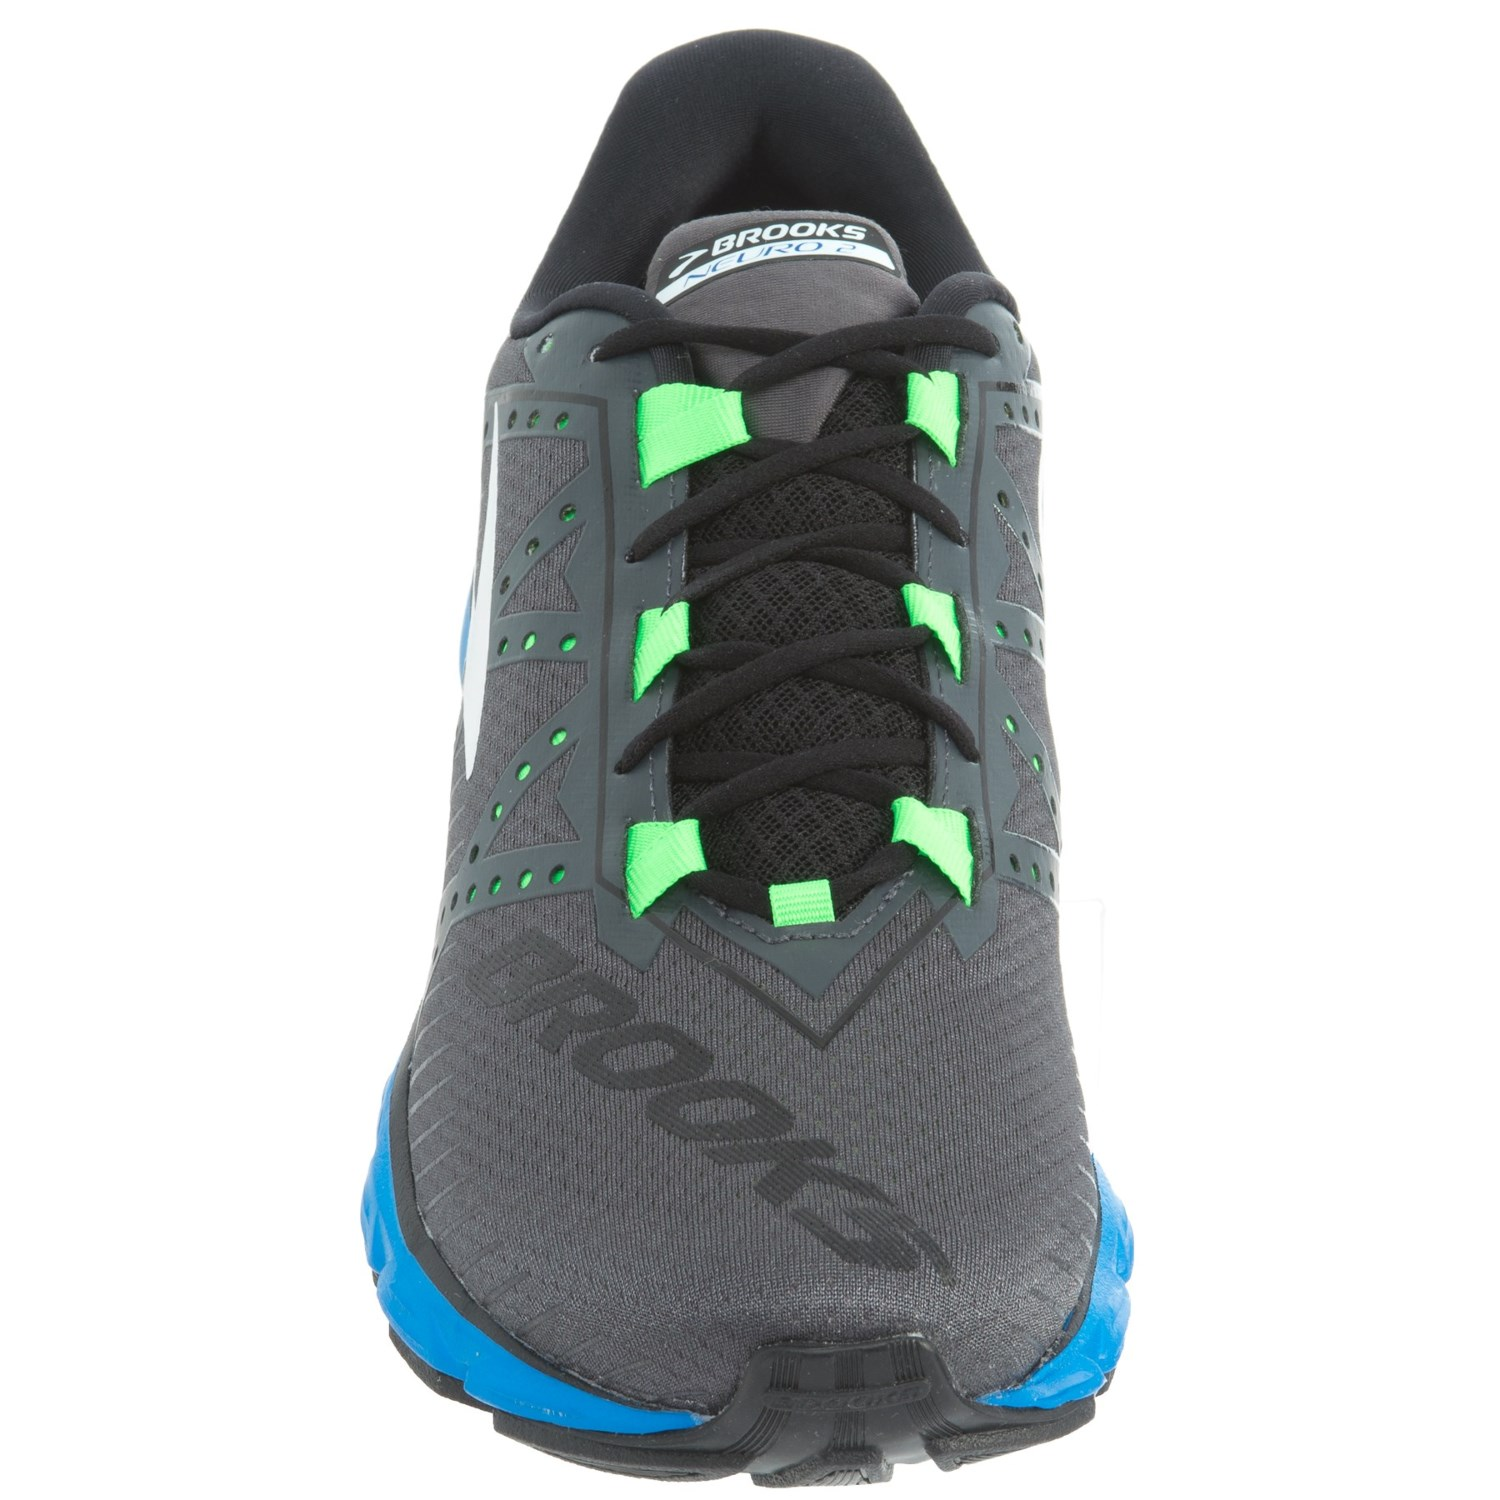 2836fe161ae52 Brooks Neuro Running Shoes Reviews - Style Guru  Fashion